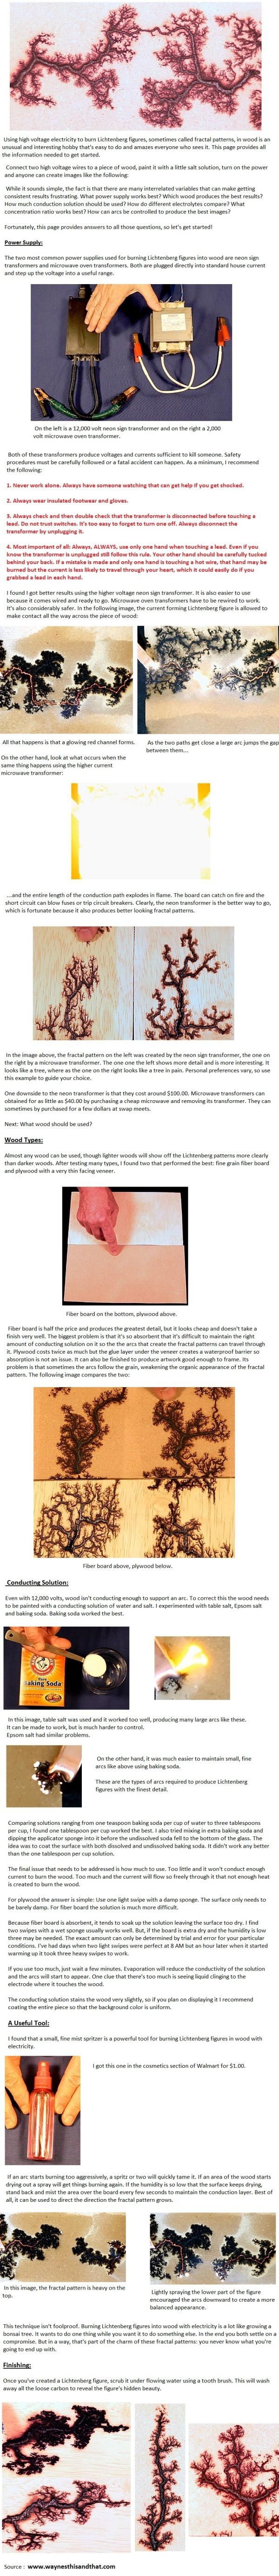 Fractal Lichtenberg Figure Wood Burning With Electricity By waynesthisandthat.com | WoodworkerZ.com